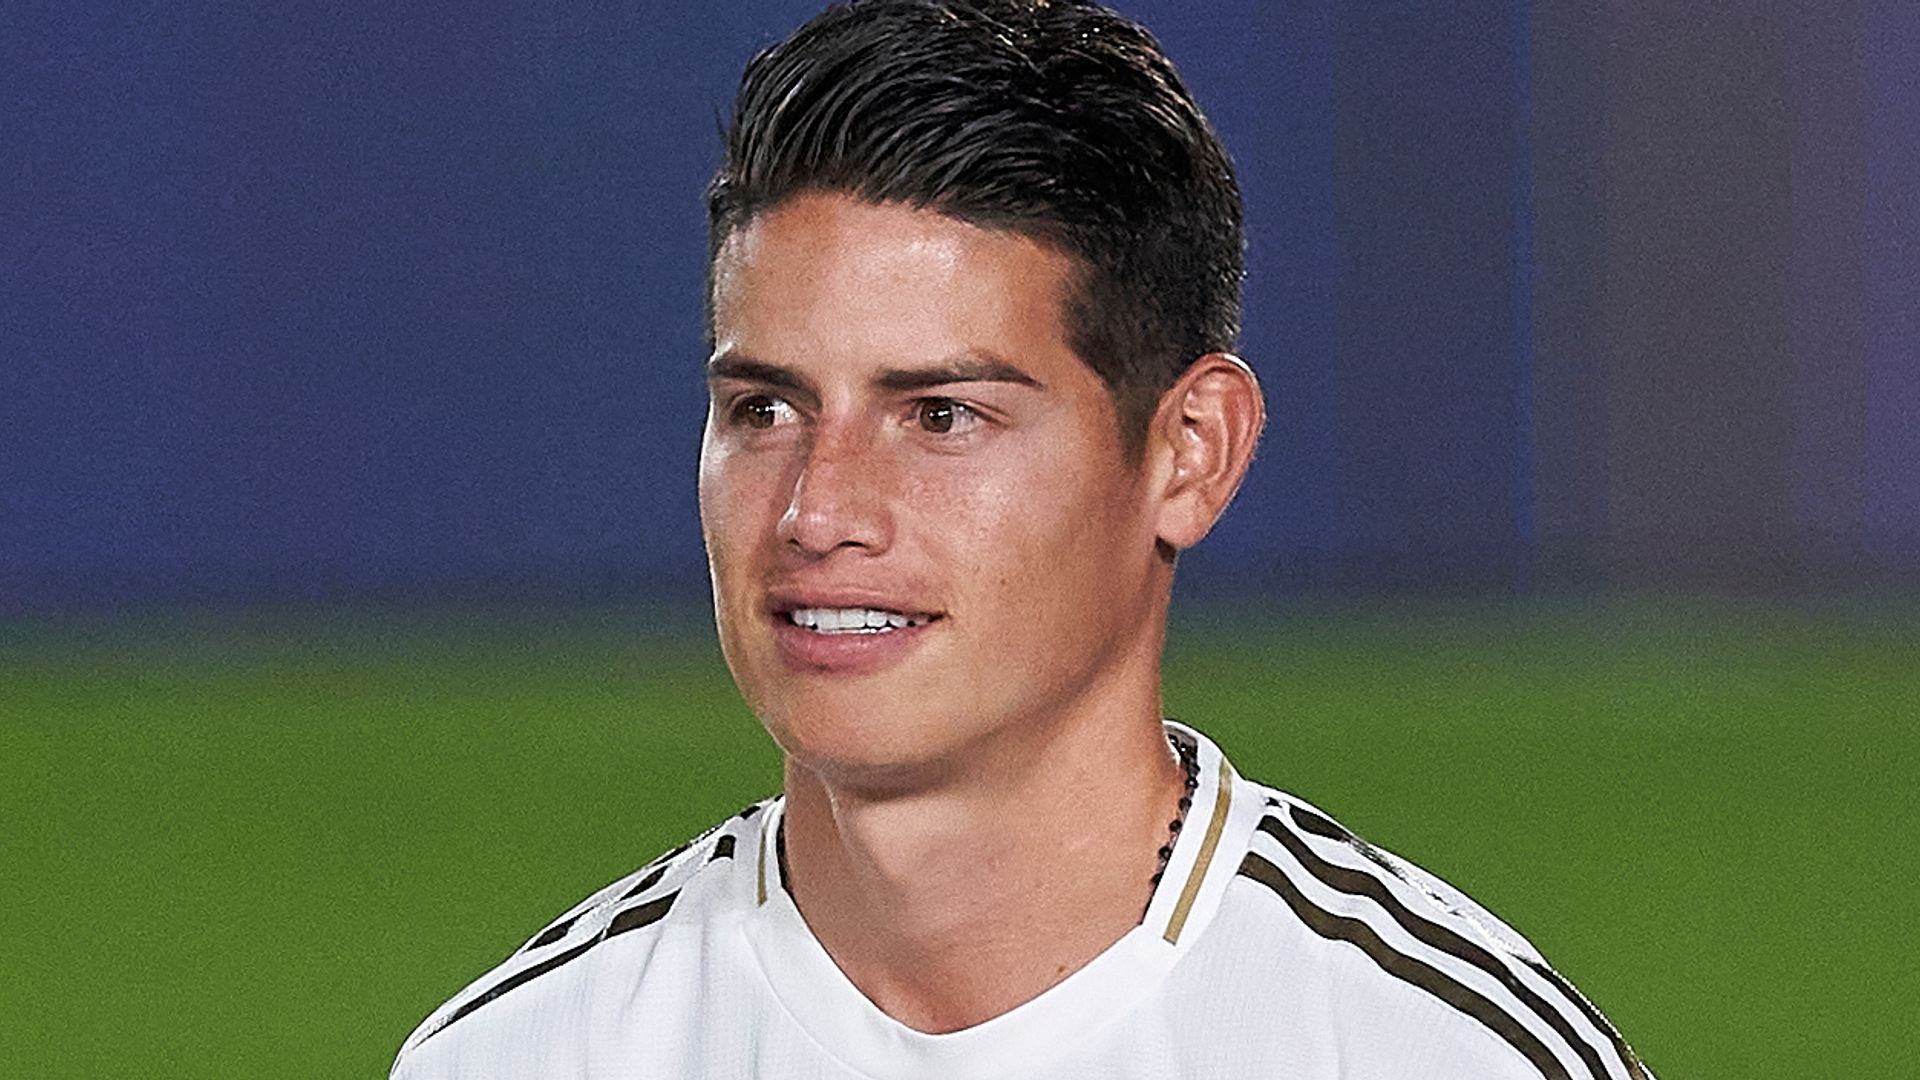 Everton sign James from Real Madrid for £22m